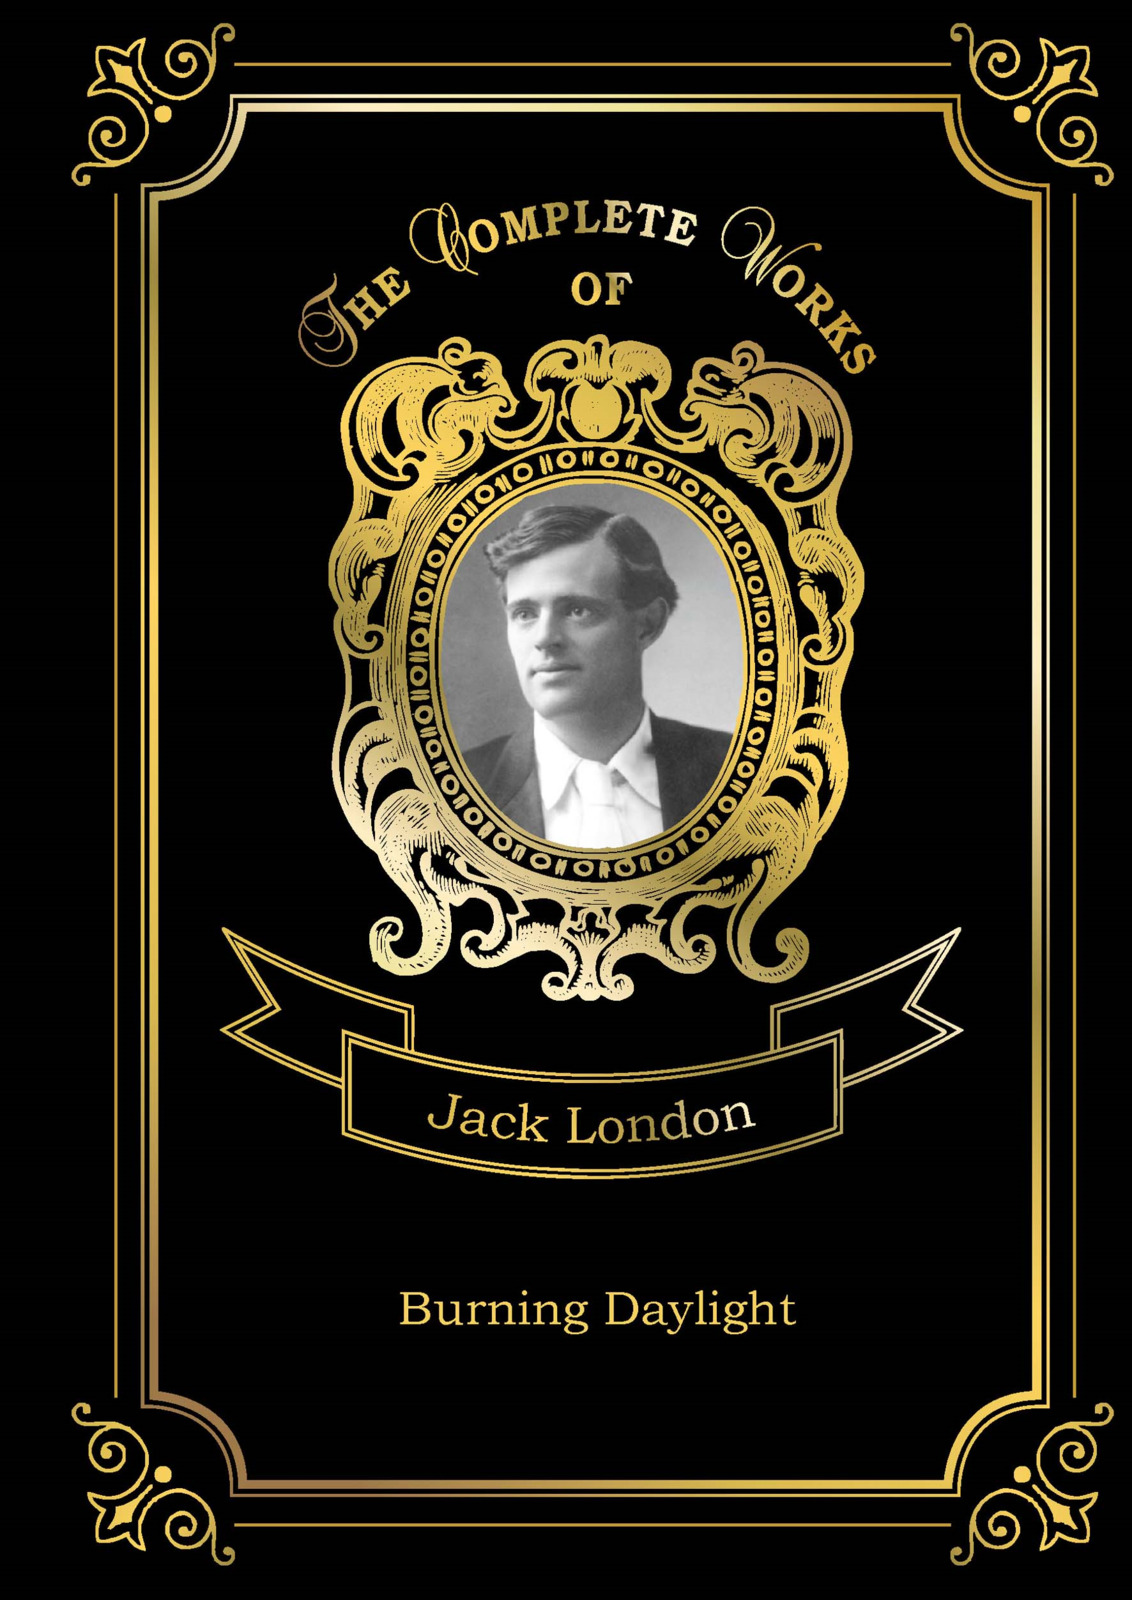 Jack London Burning Daylight omelette